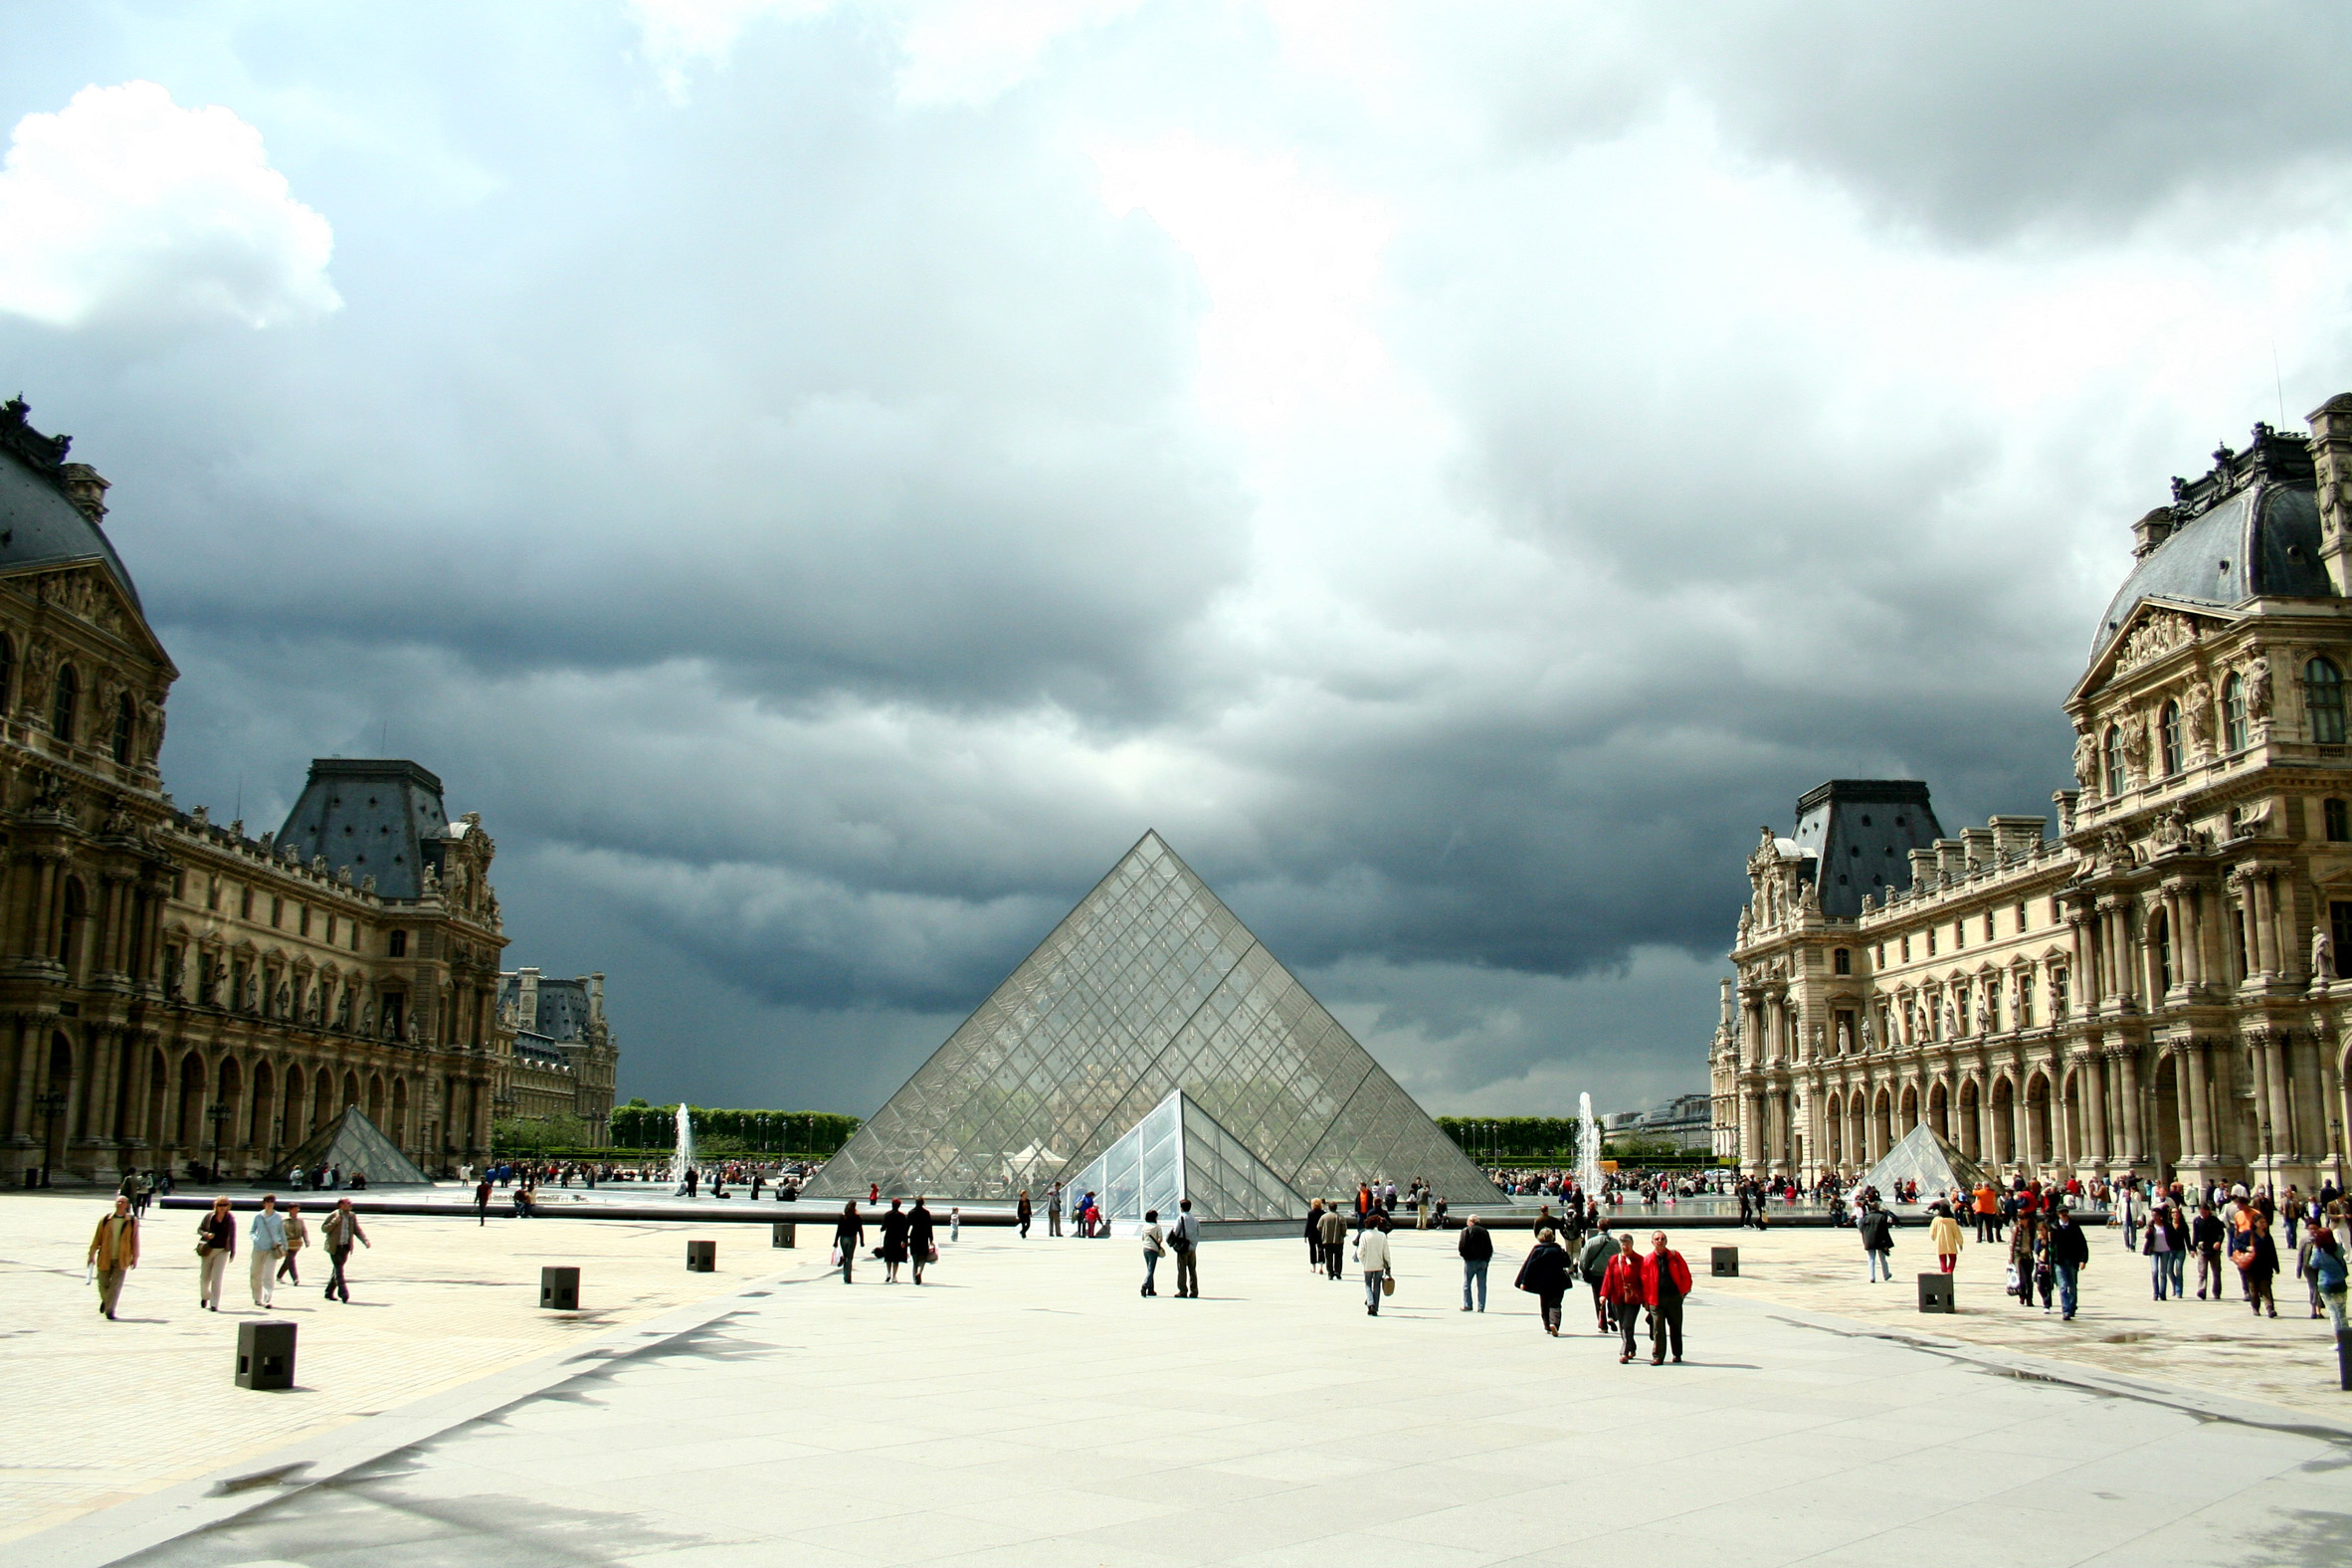 IM Pei's Grande Louvre receives AIA 25-year award